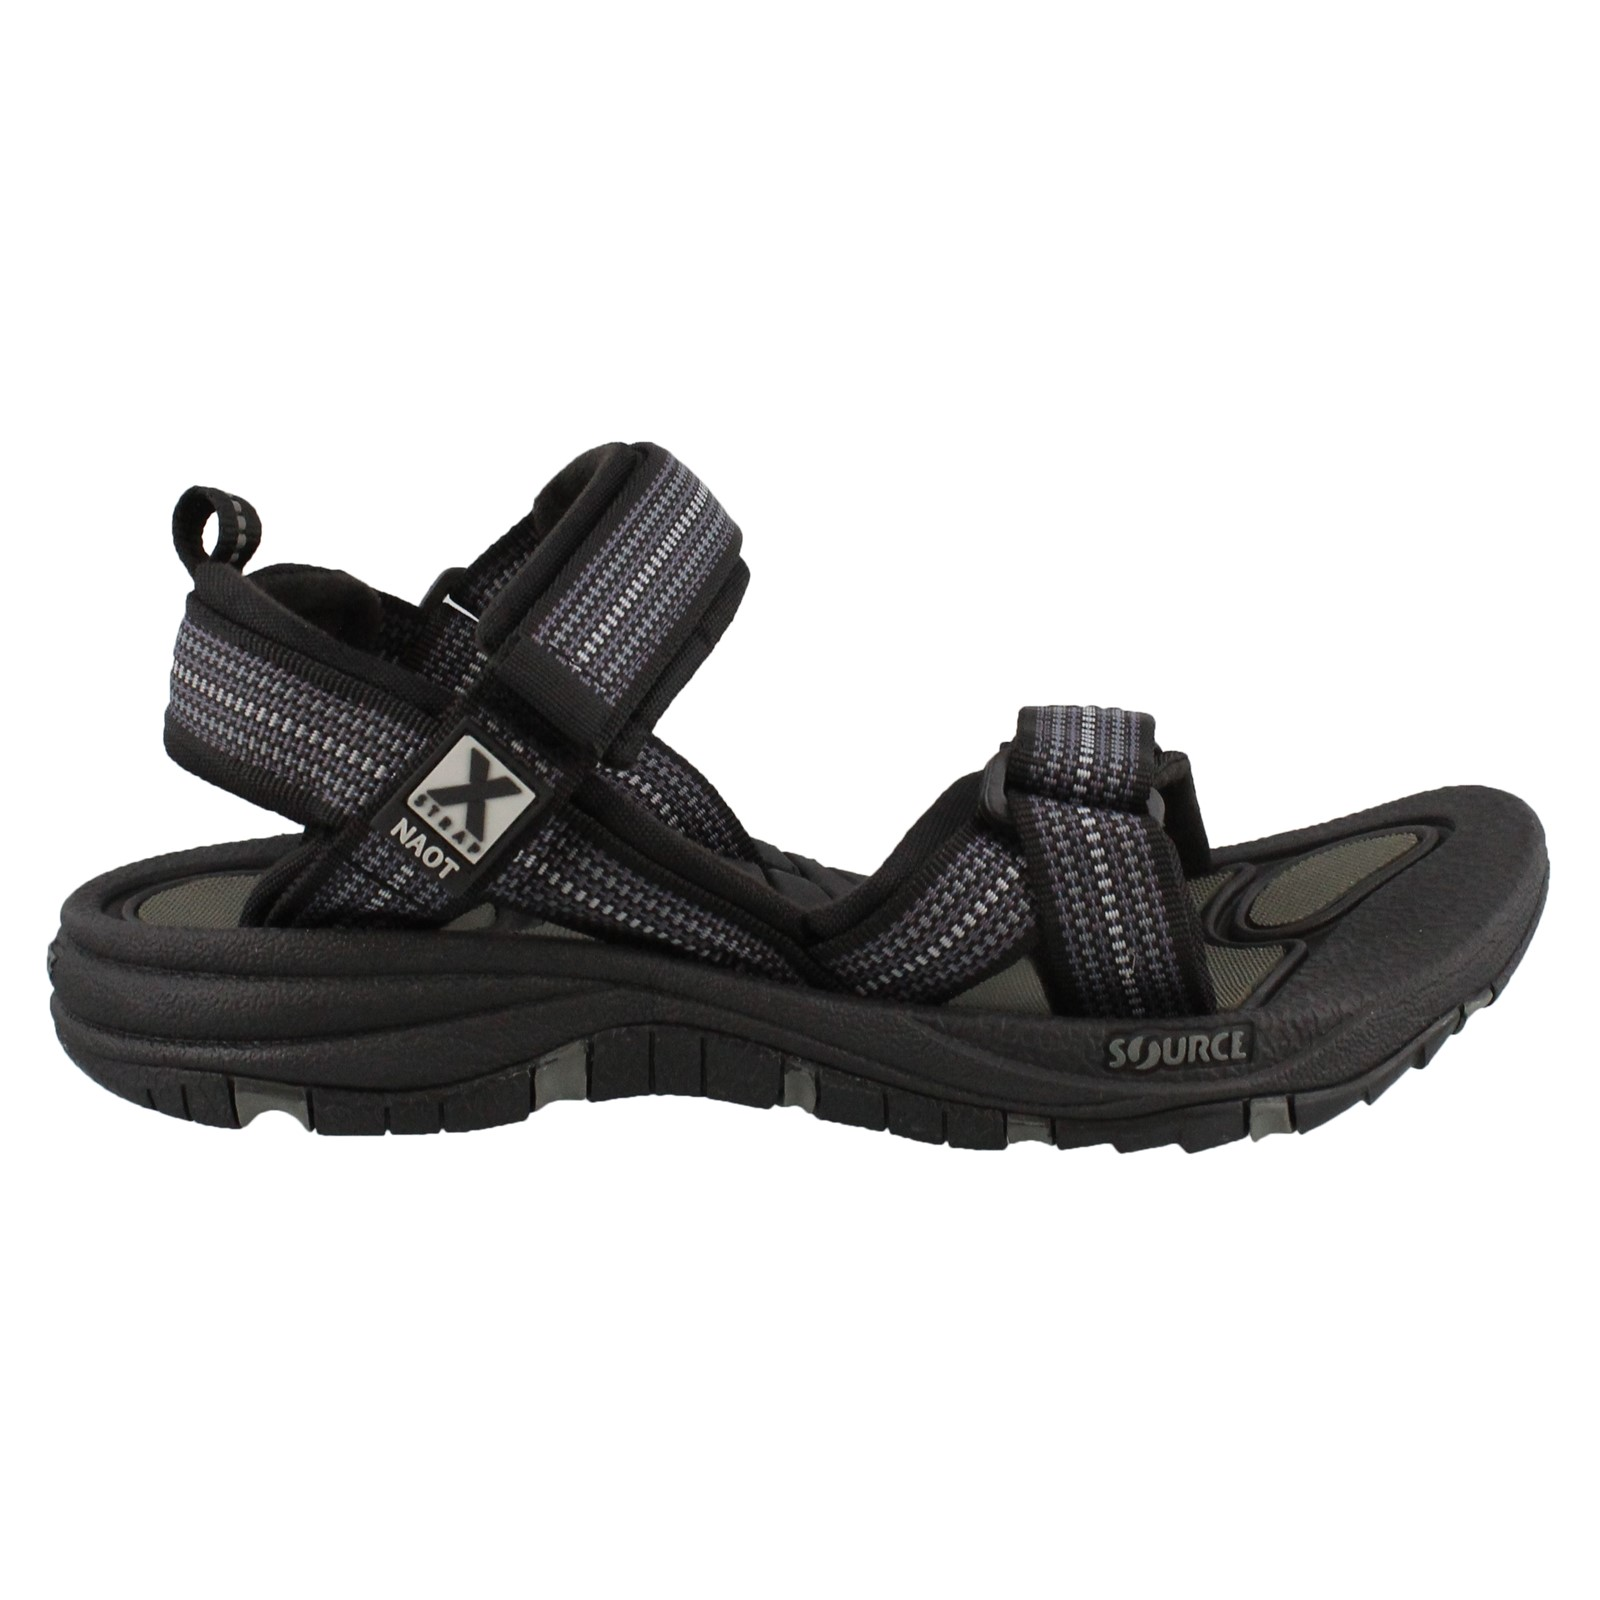 Men's Naot, Harbor Sandals